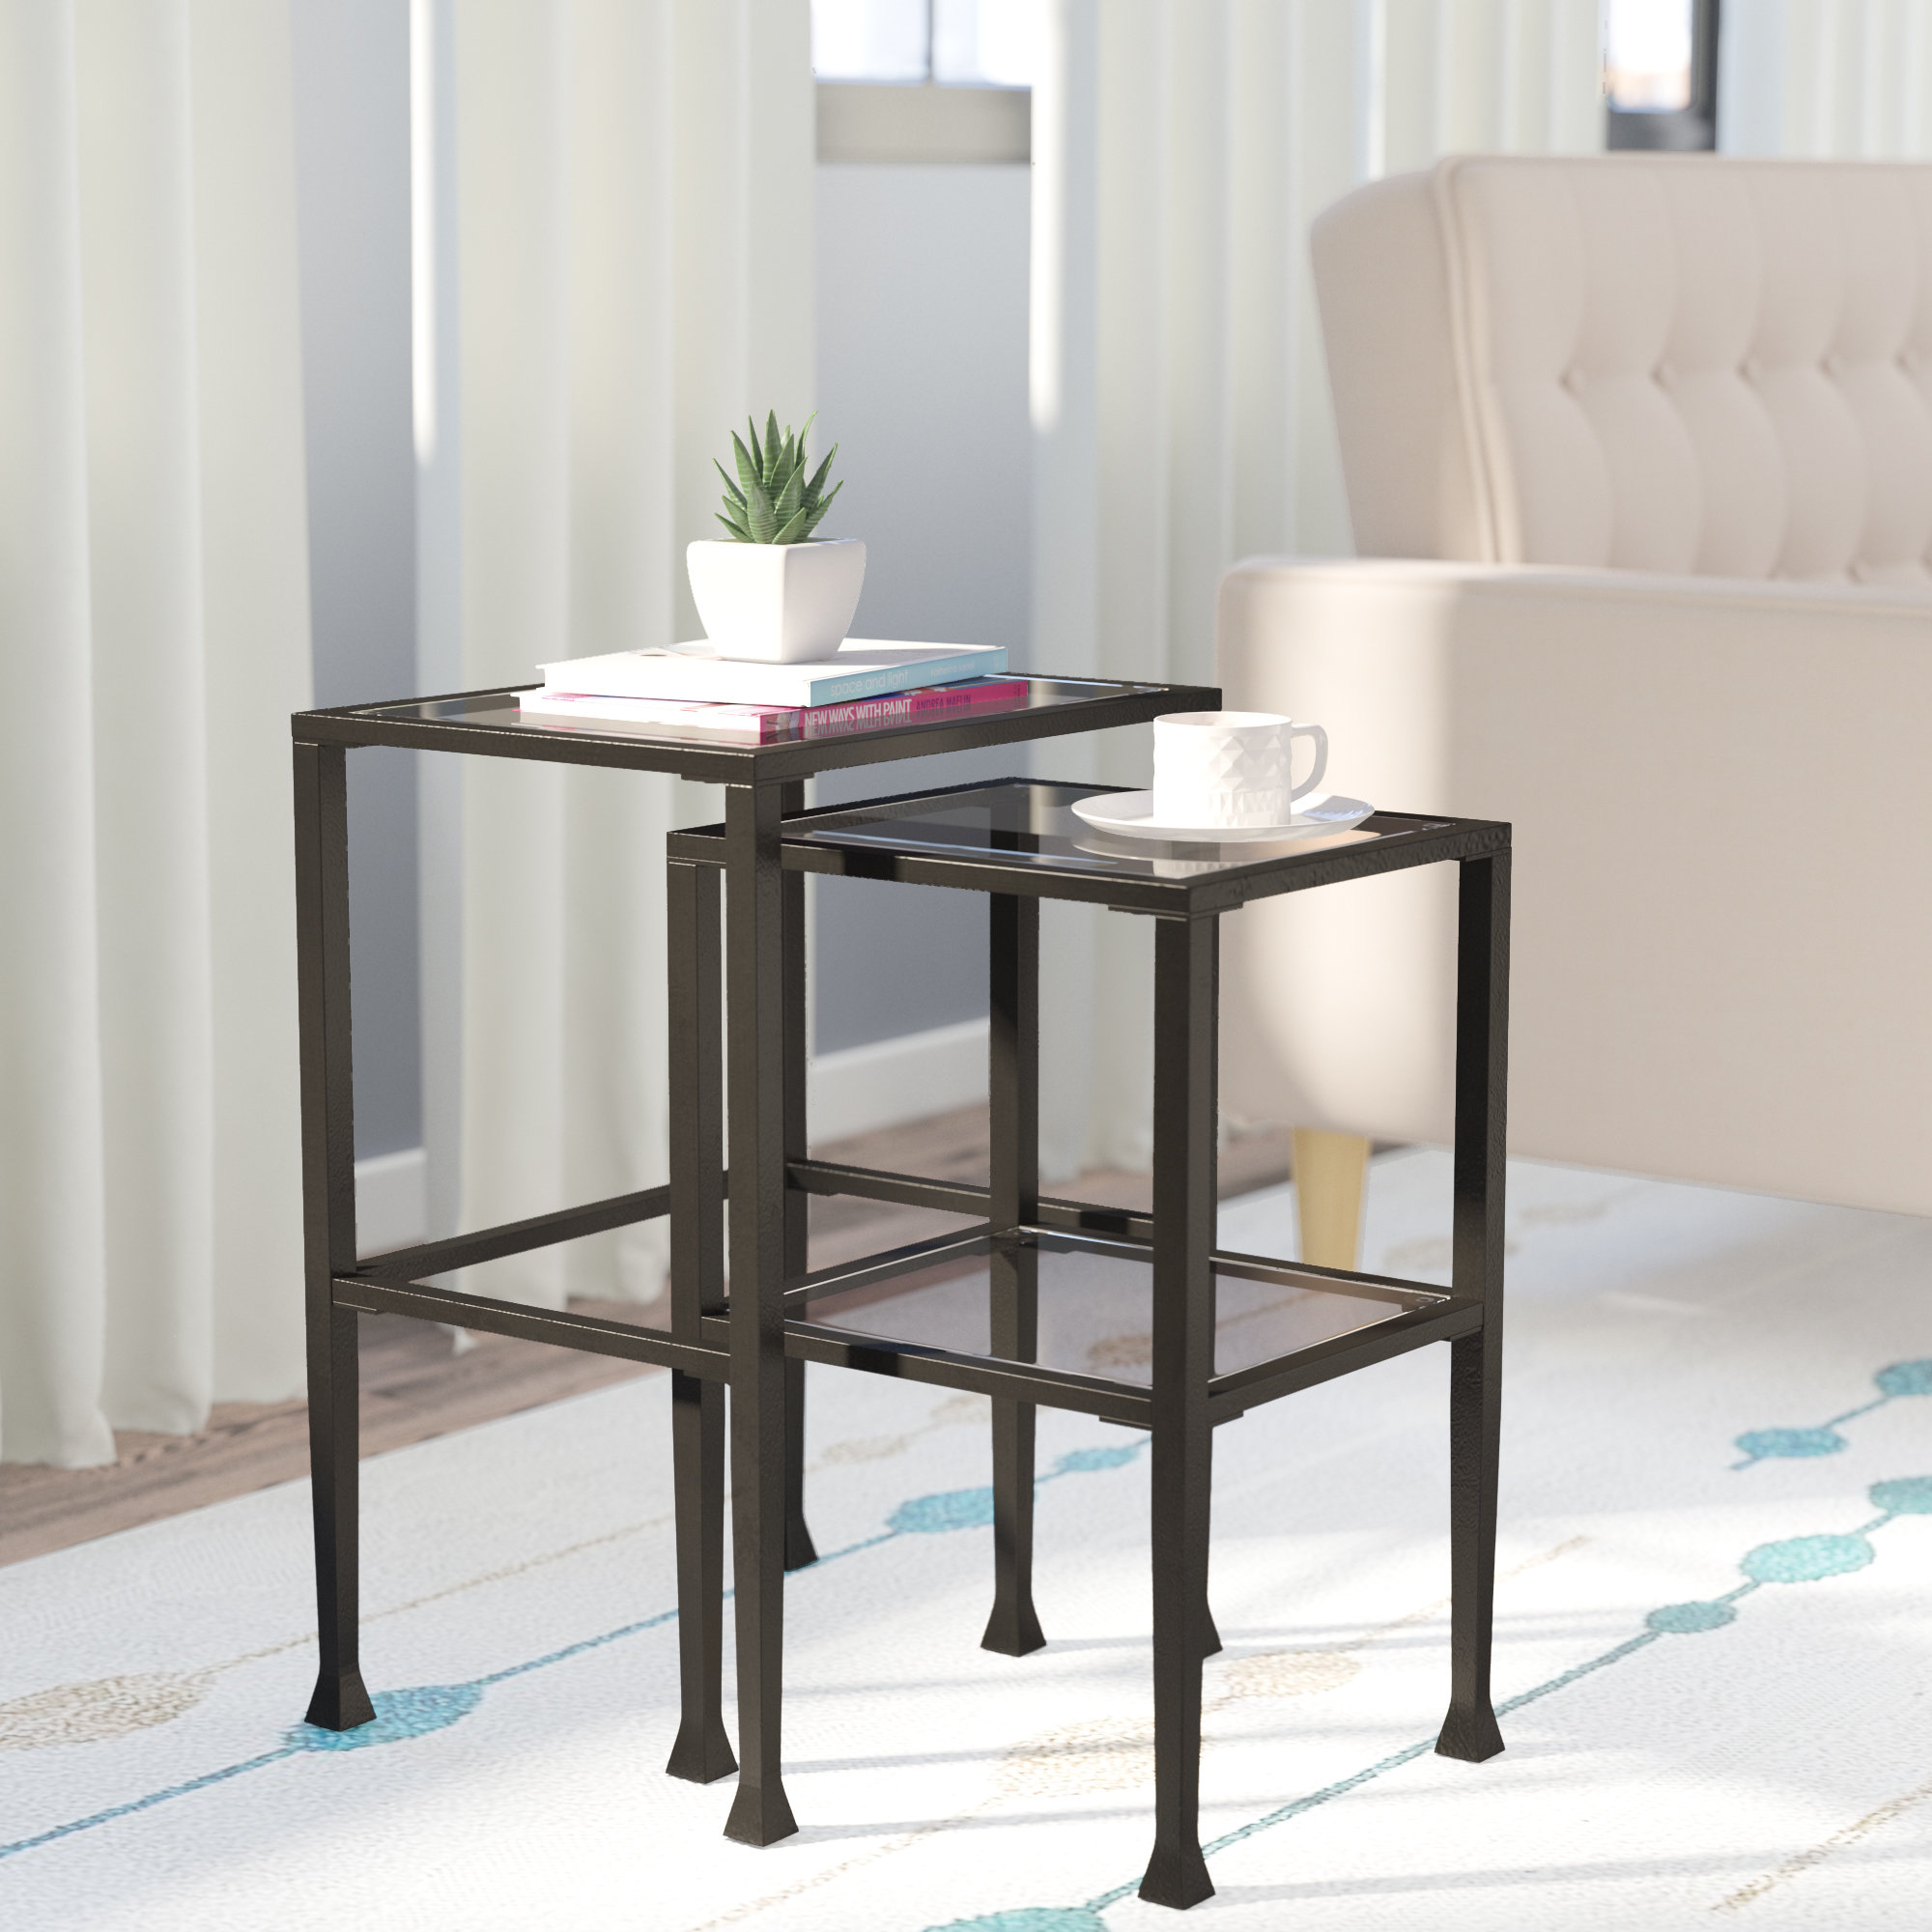 nesting tables you love sabrina piece tier accent table target pottery barn architect lamp nautical cage light all glass coffee night wall for living room tall bar set metal patio